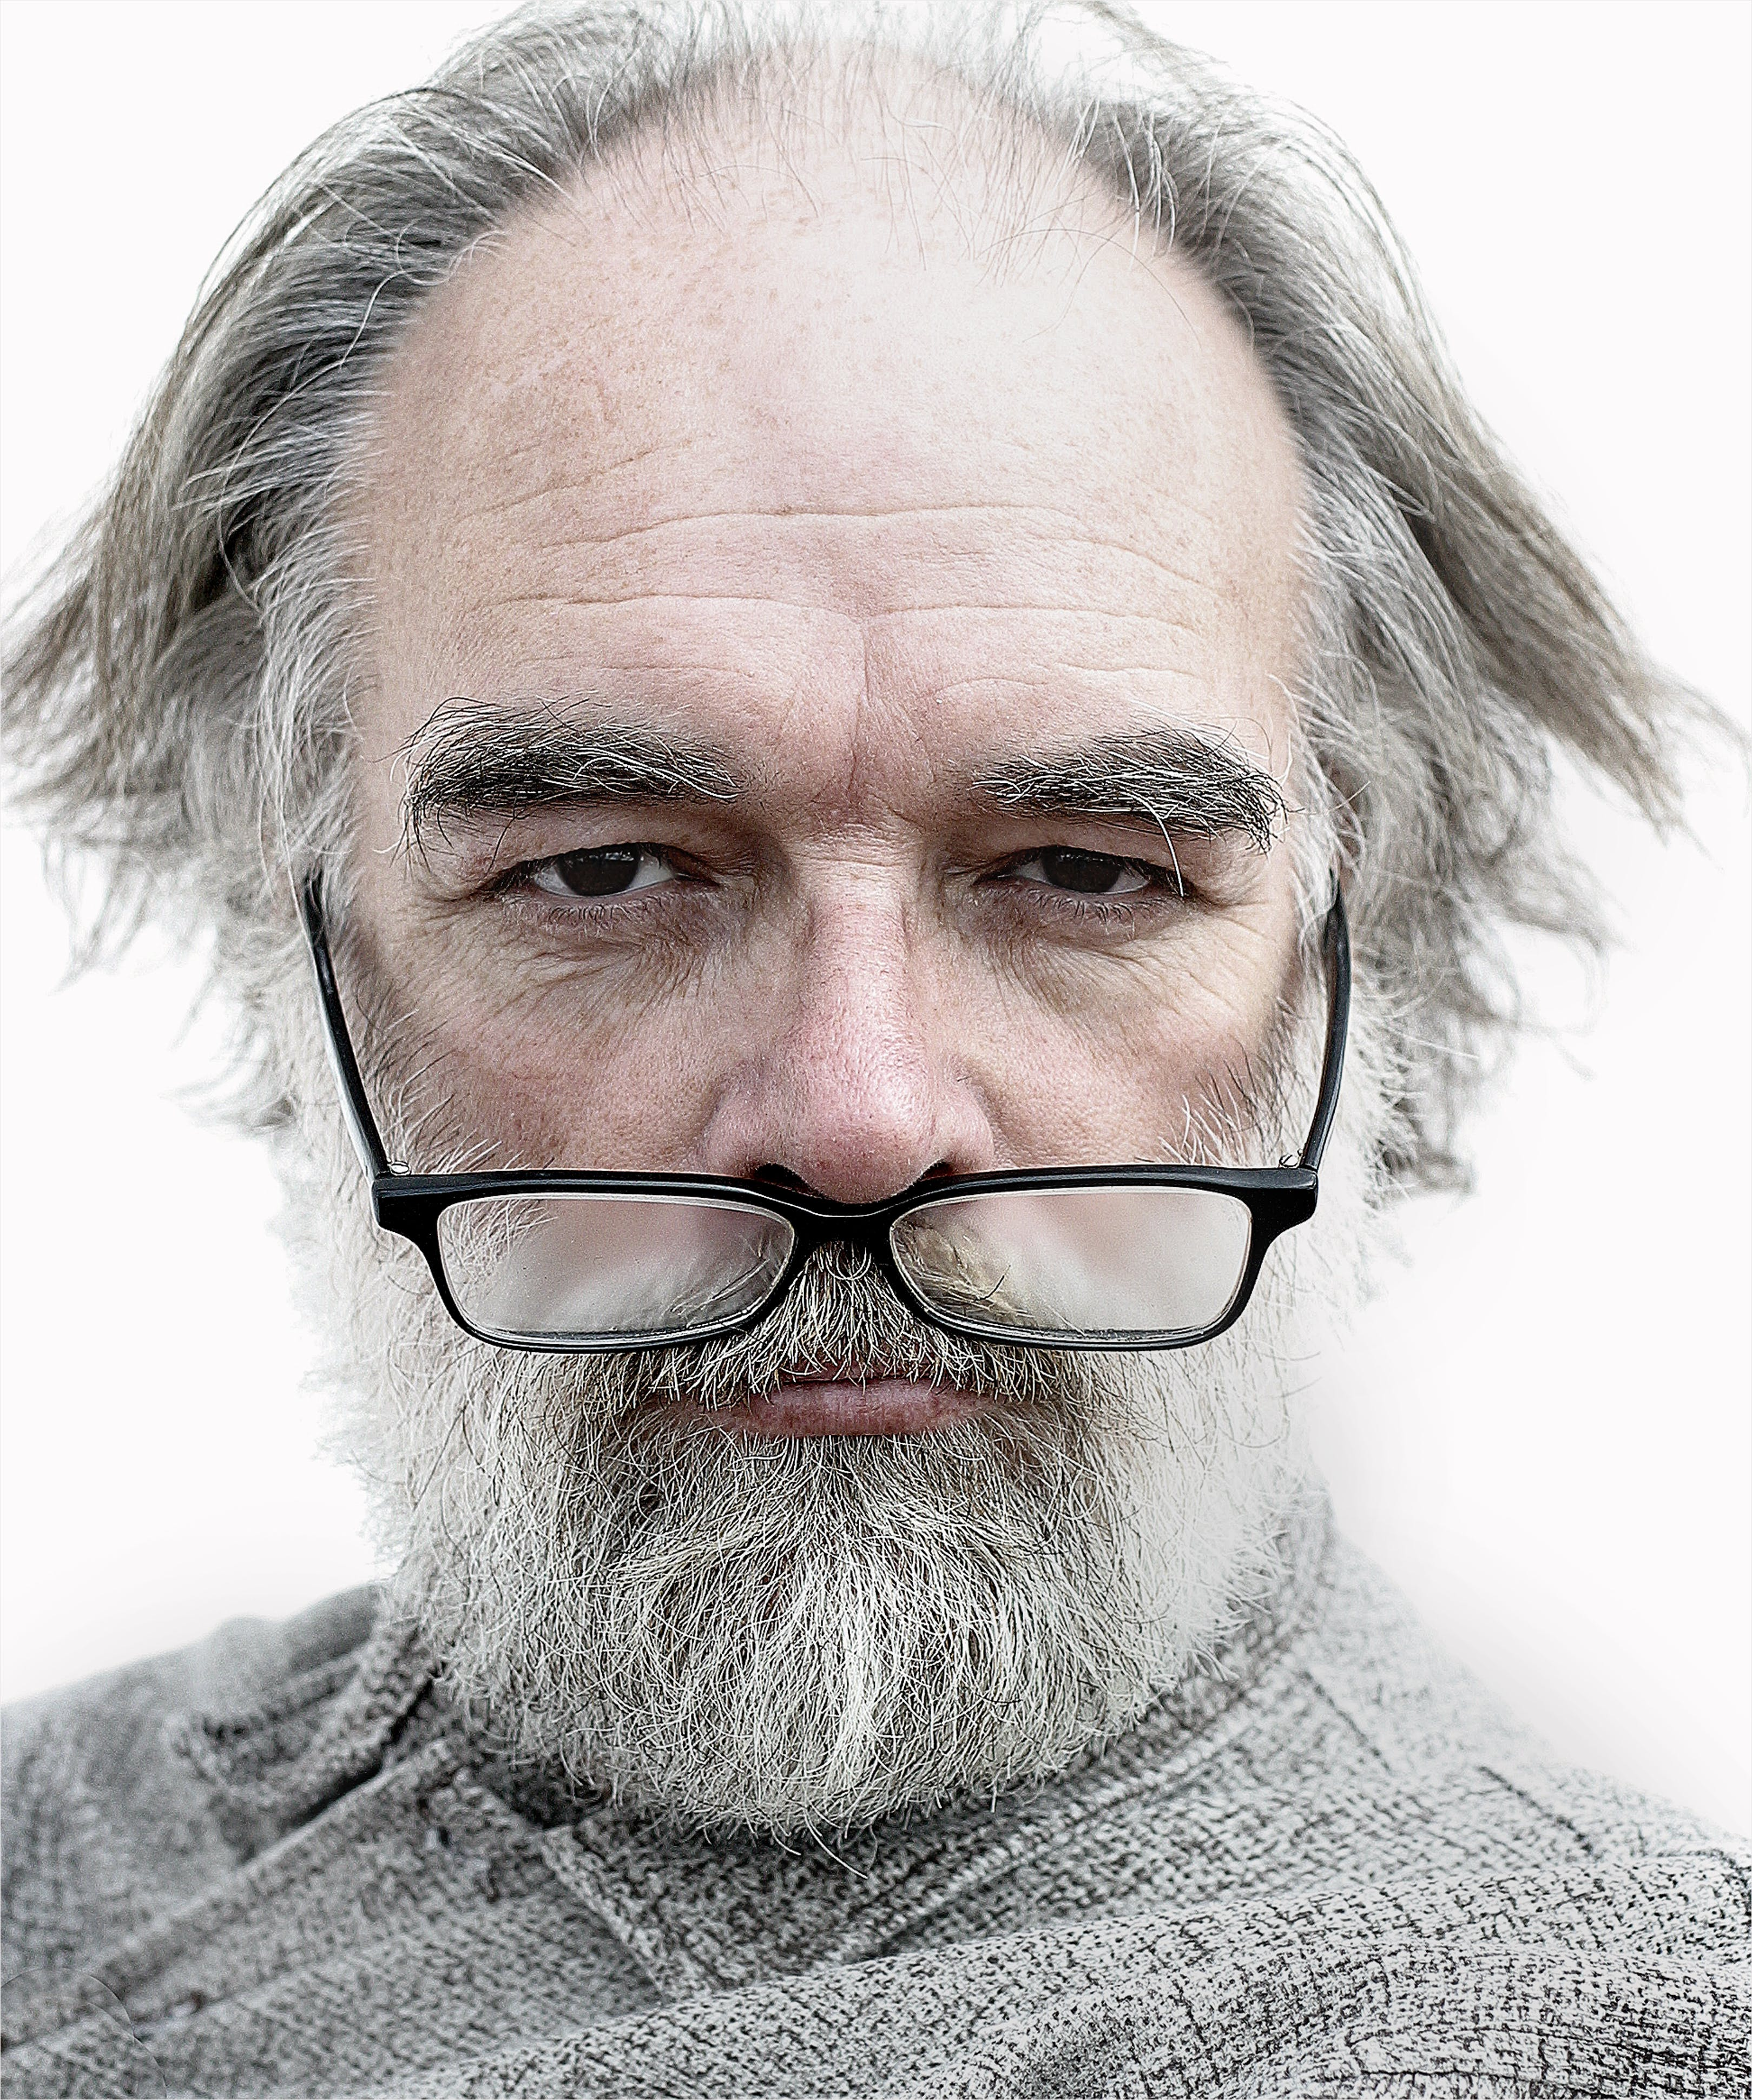 Free stock photo of man, portrait, old, glasses